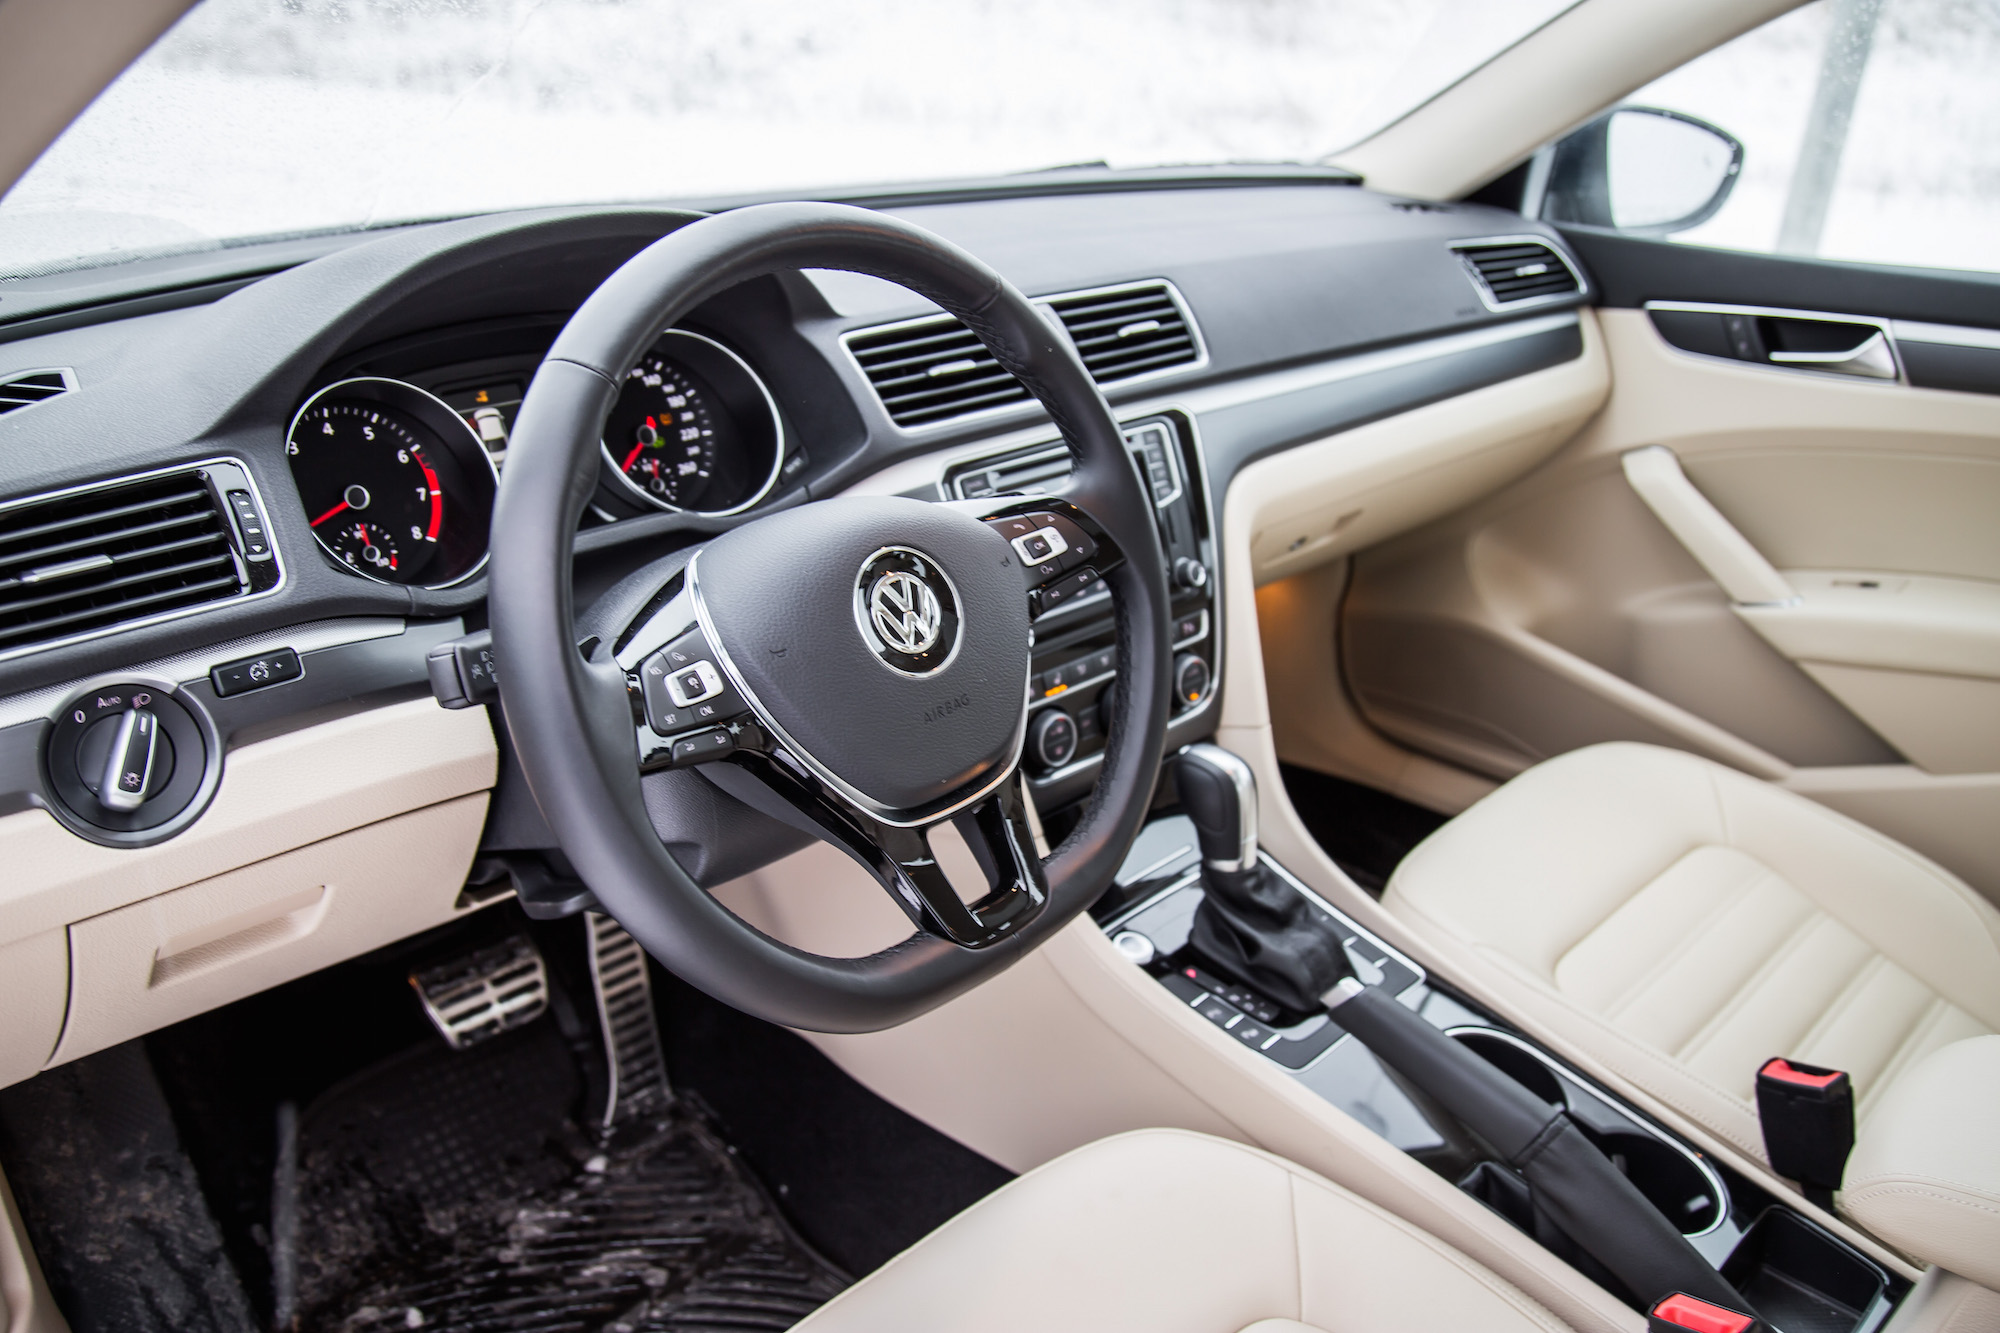 angeles news new features in magazine eurotuner debut vw los web exclusive volkswagen cc eurp cover to